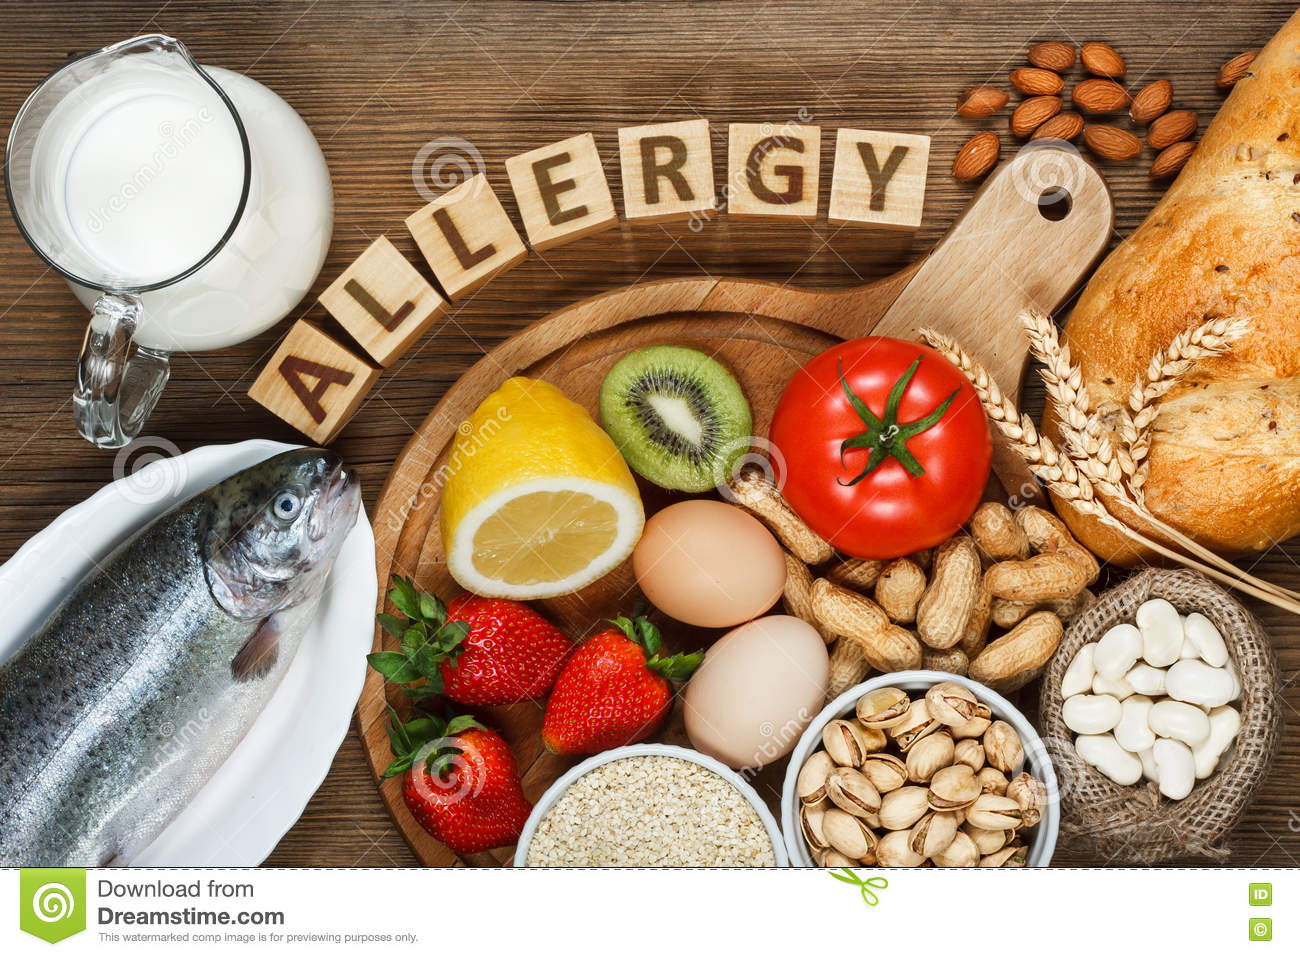 Pity, adult developed food allergies sorry, that